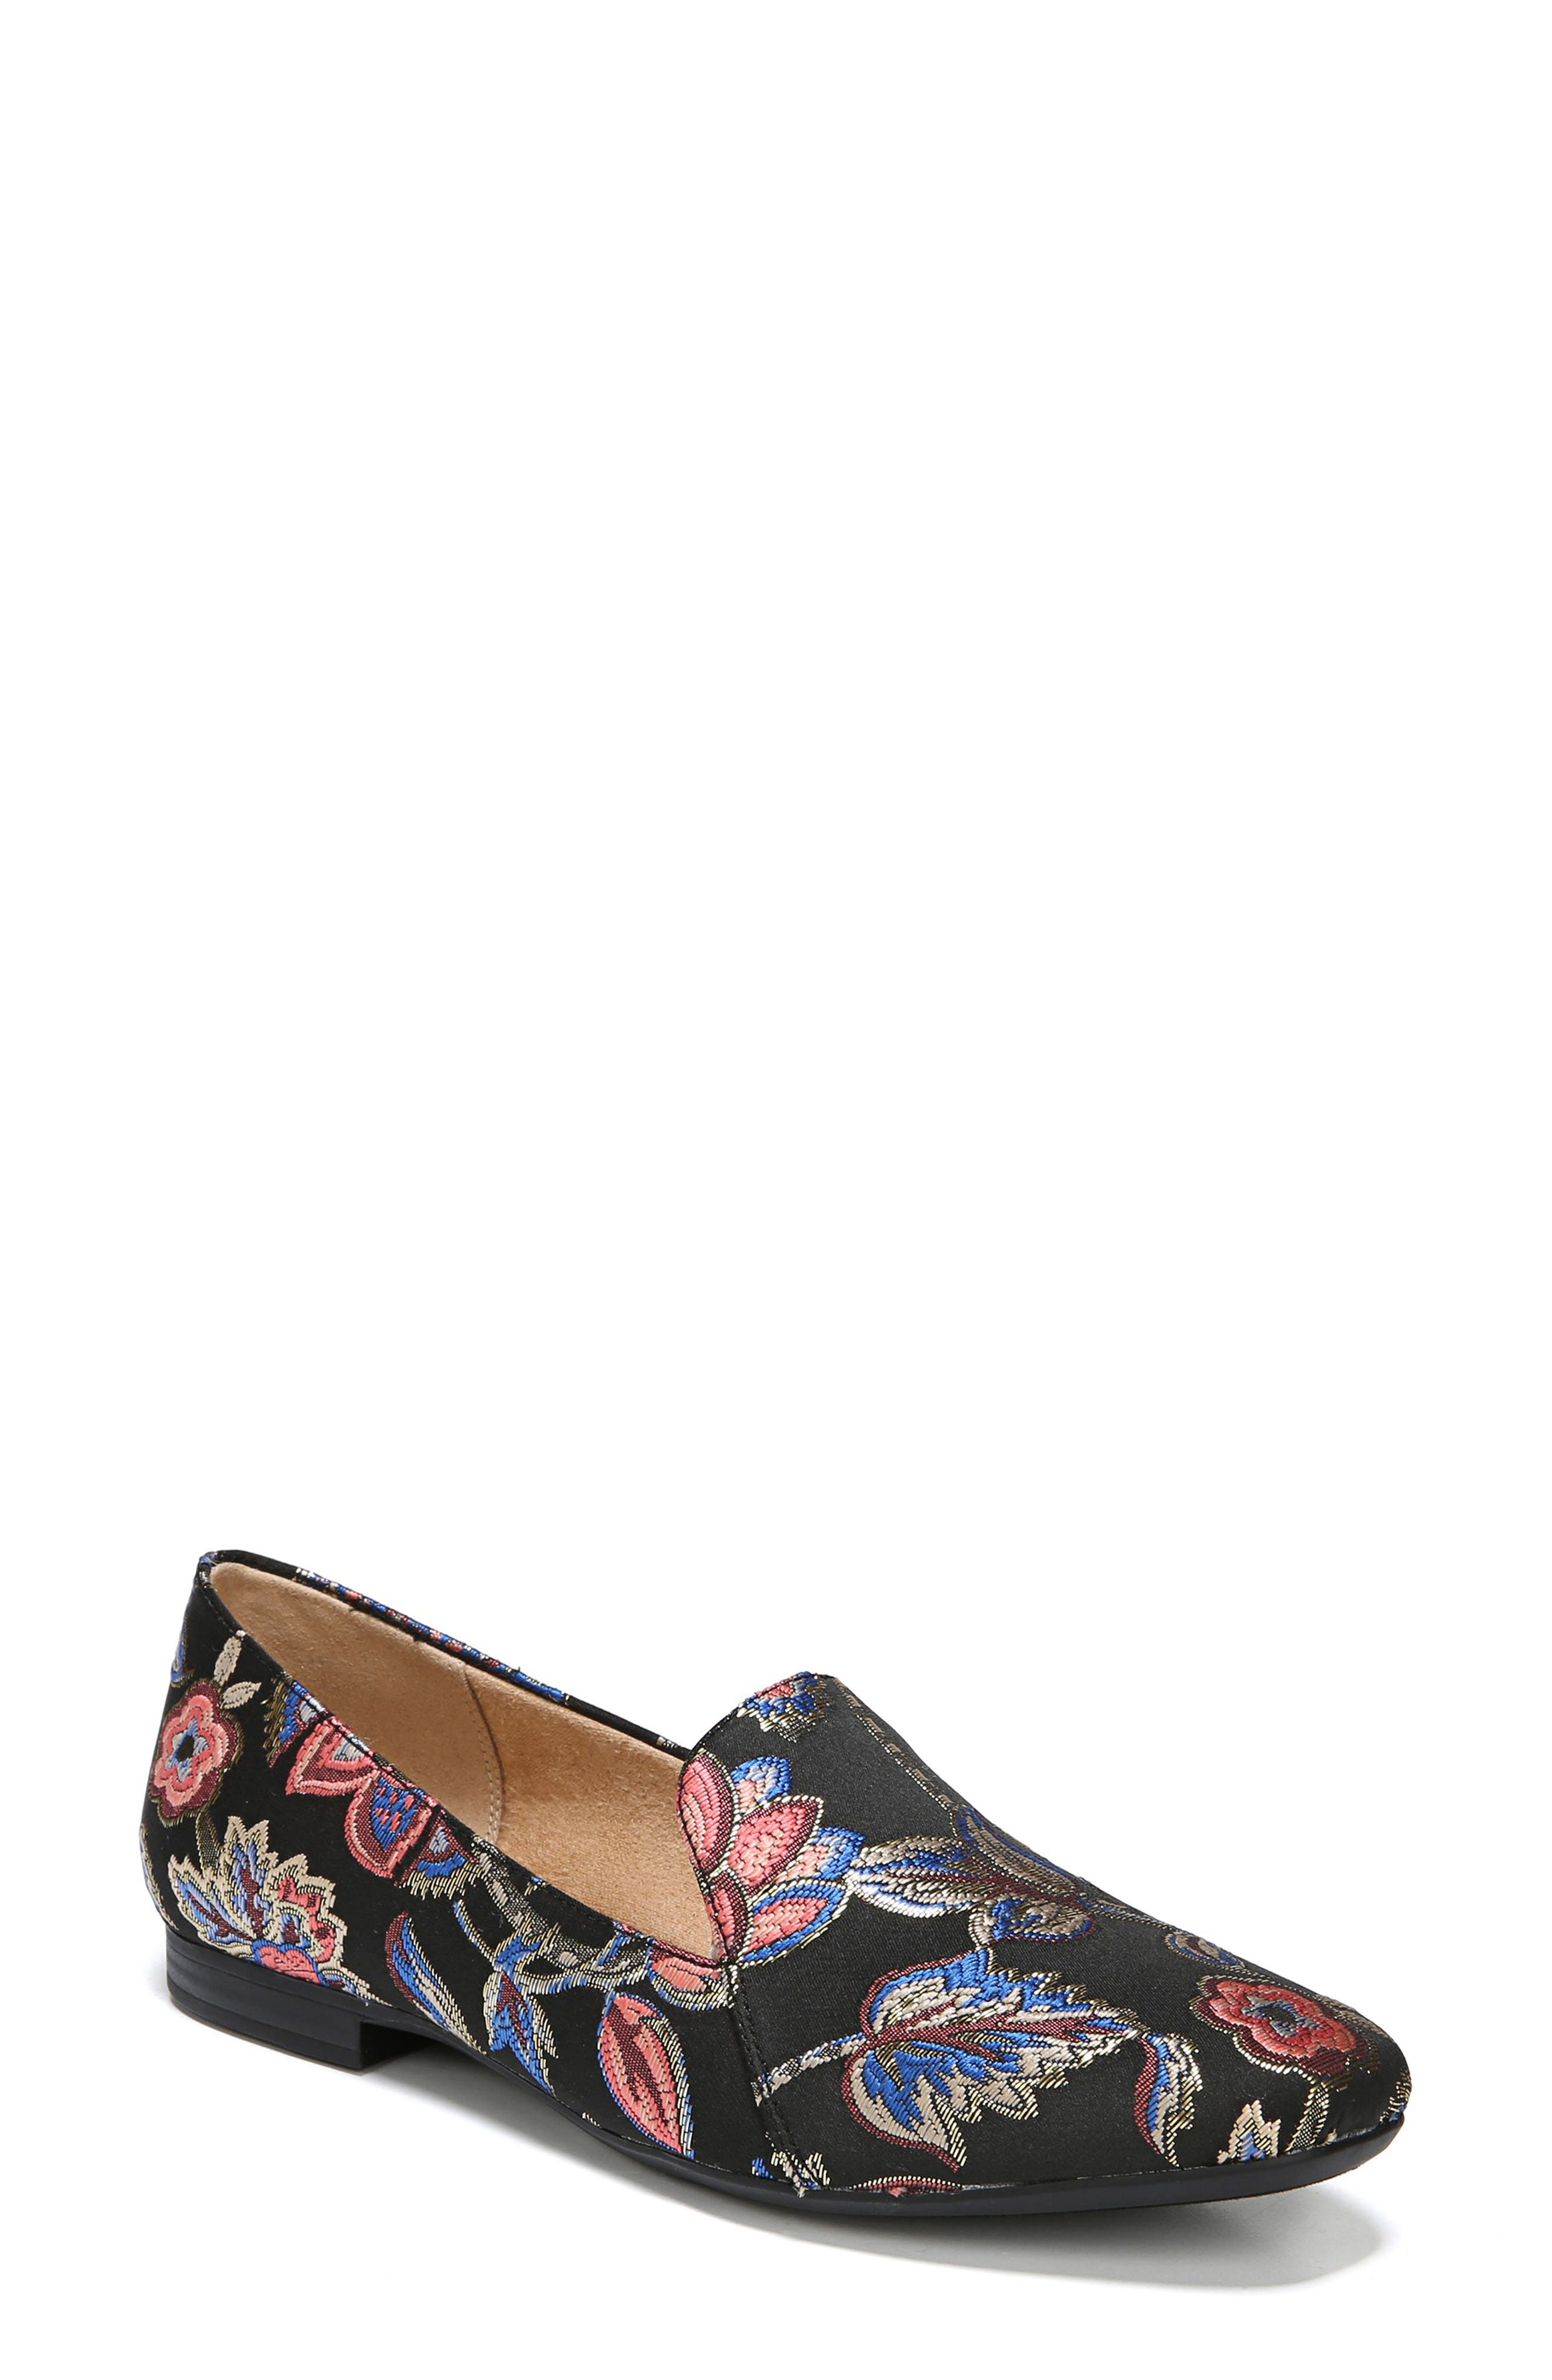 NATURALIZER, Emiline Flat Loafer, Main thumbnail 1, color, BROCADE